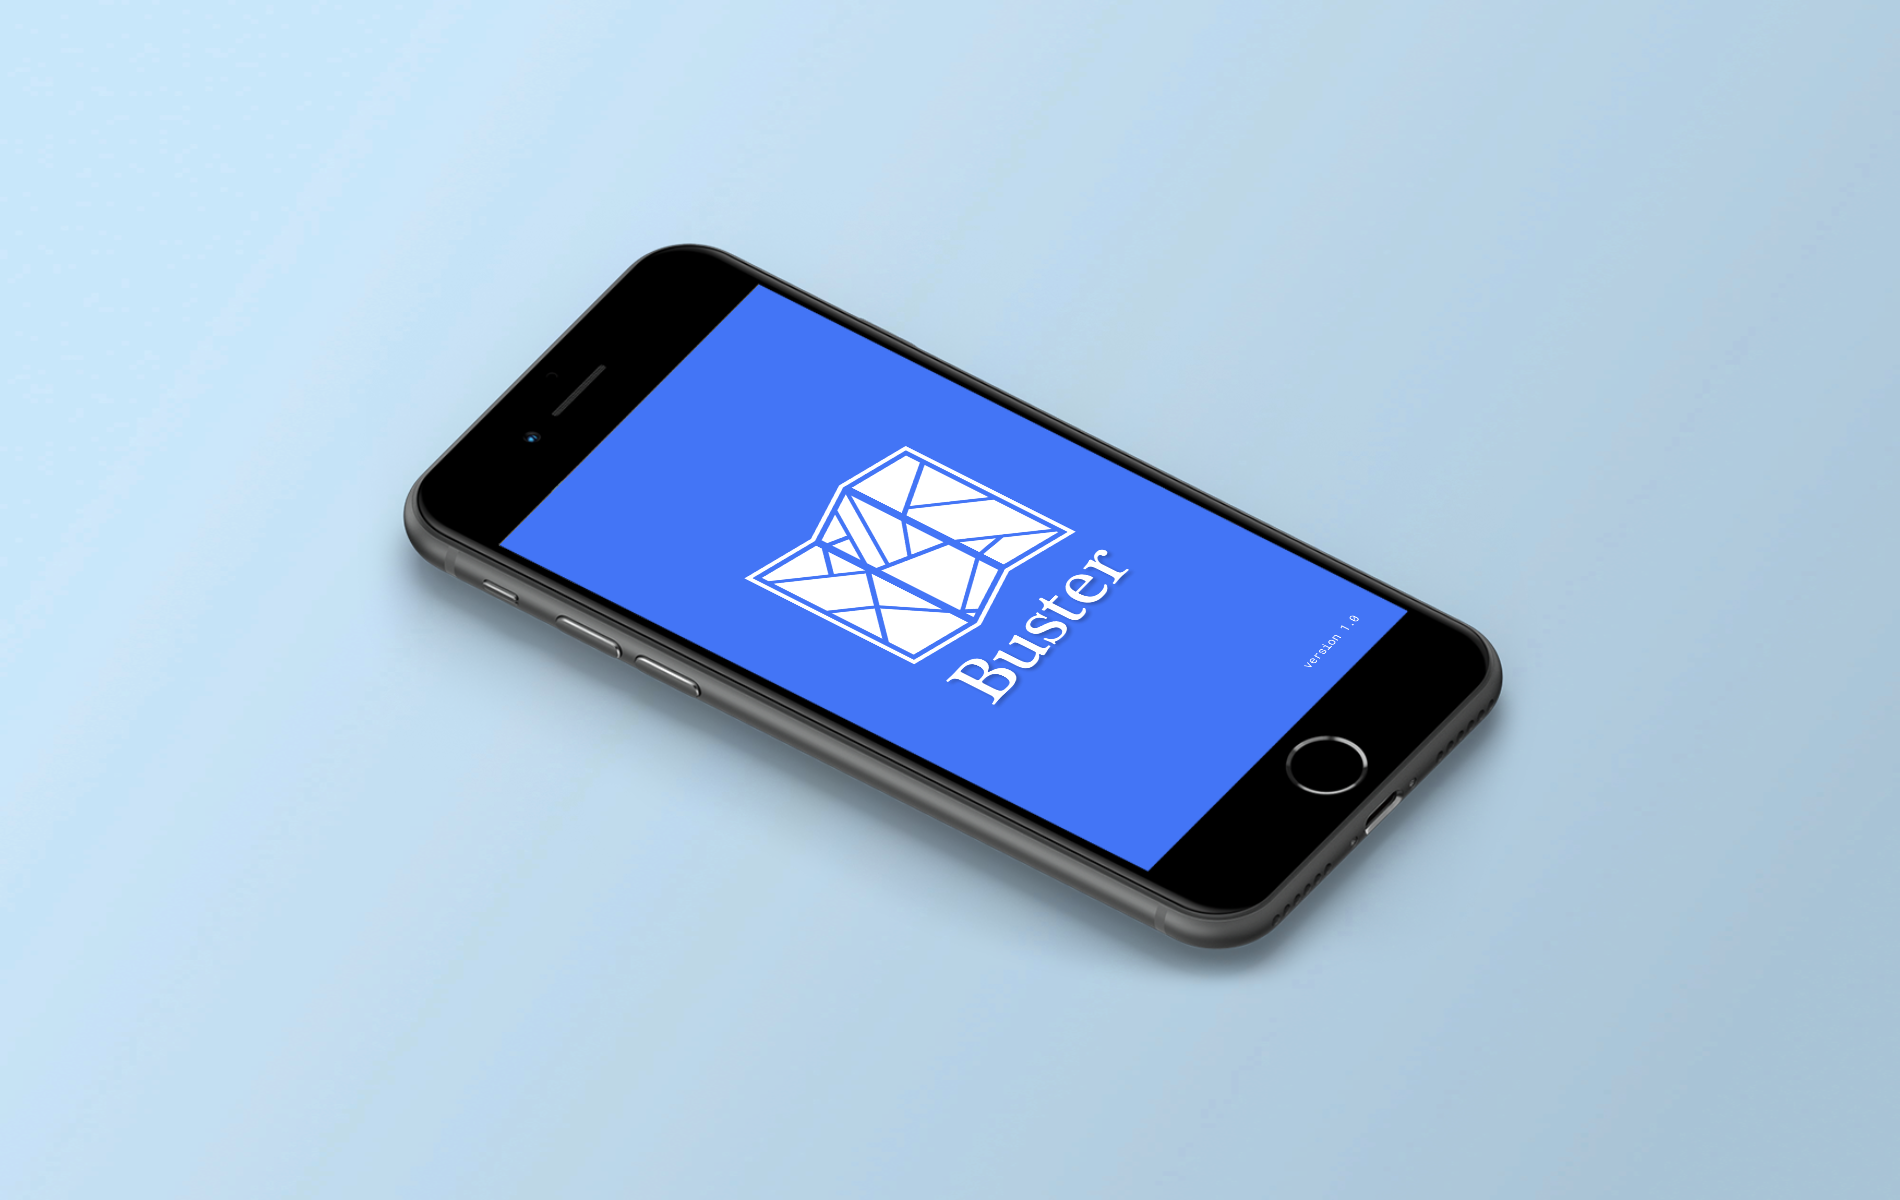 Iphone on a blue background with the logo for a bus app on the screen.